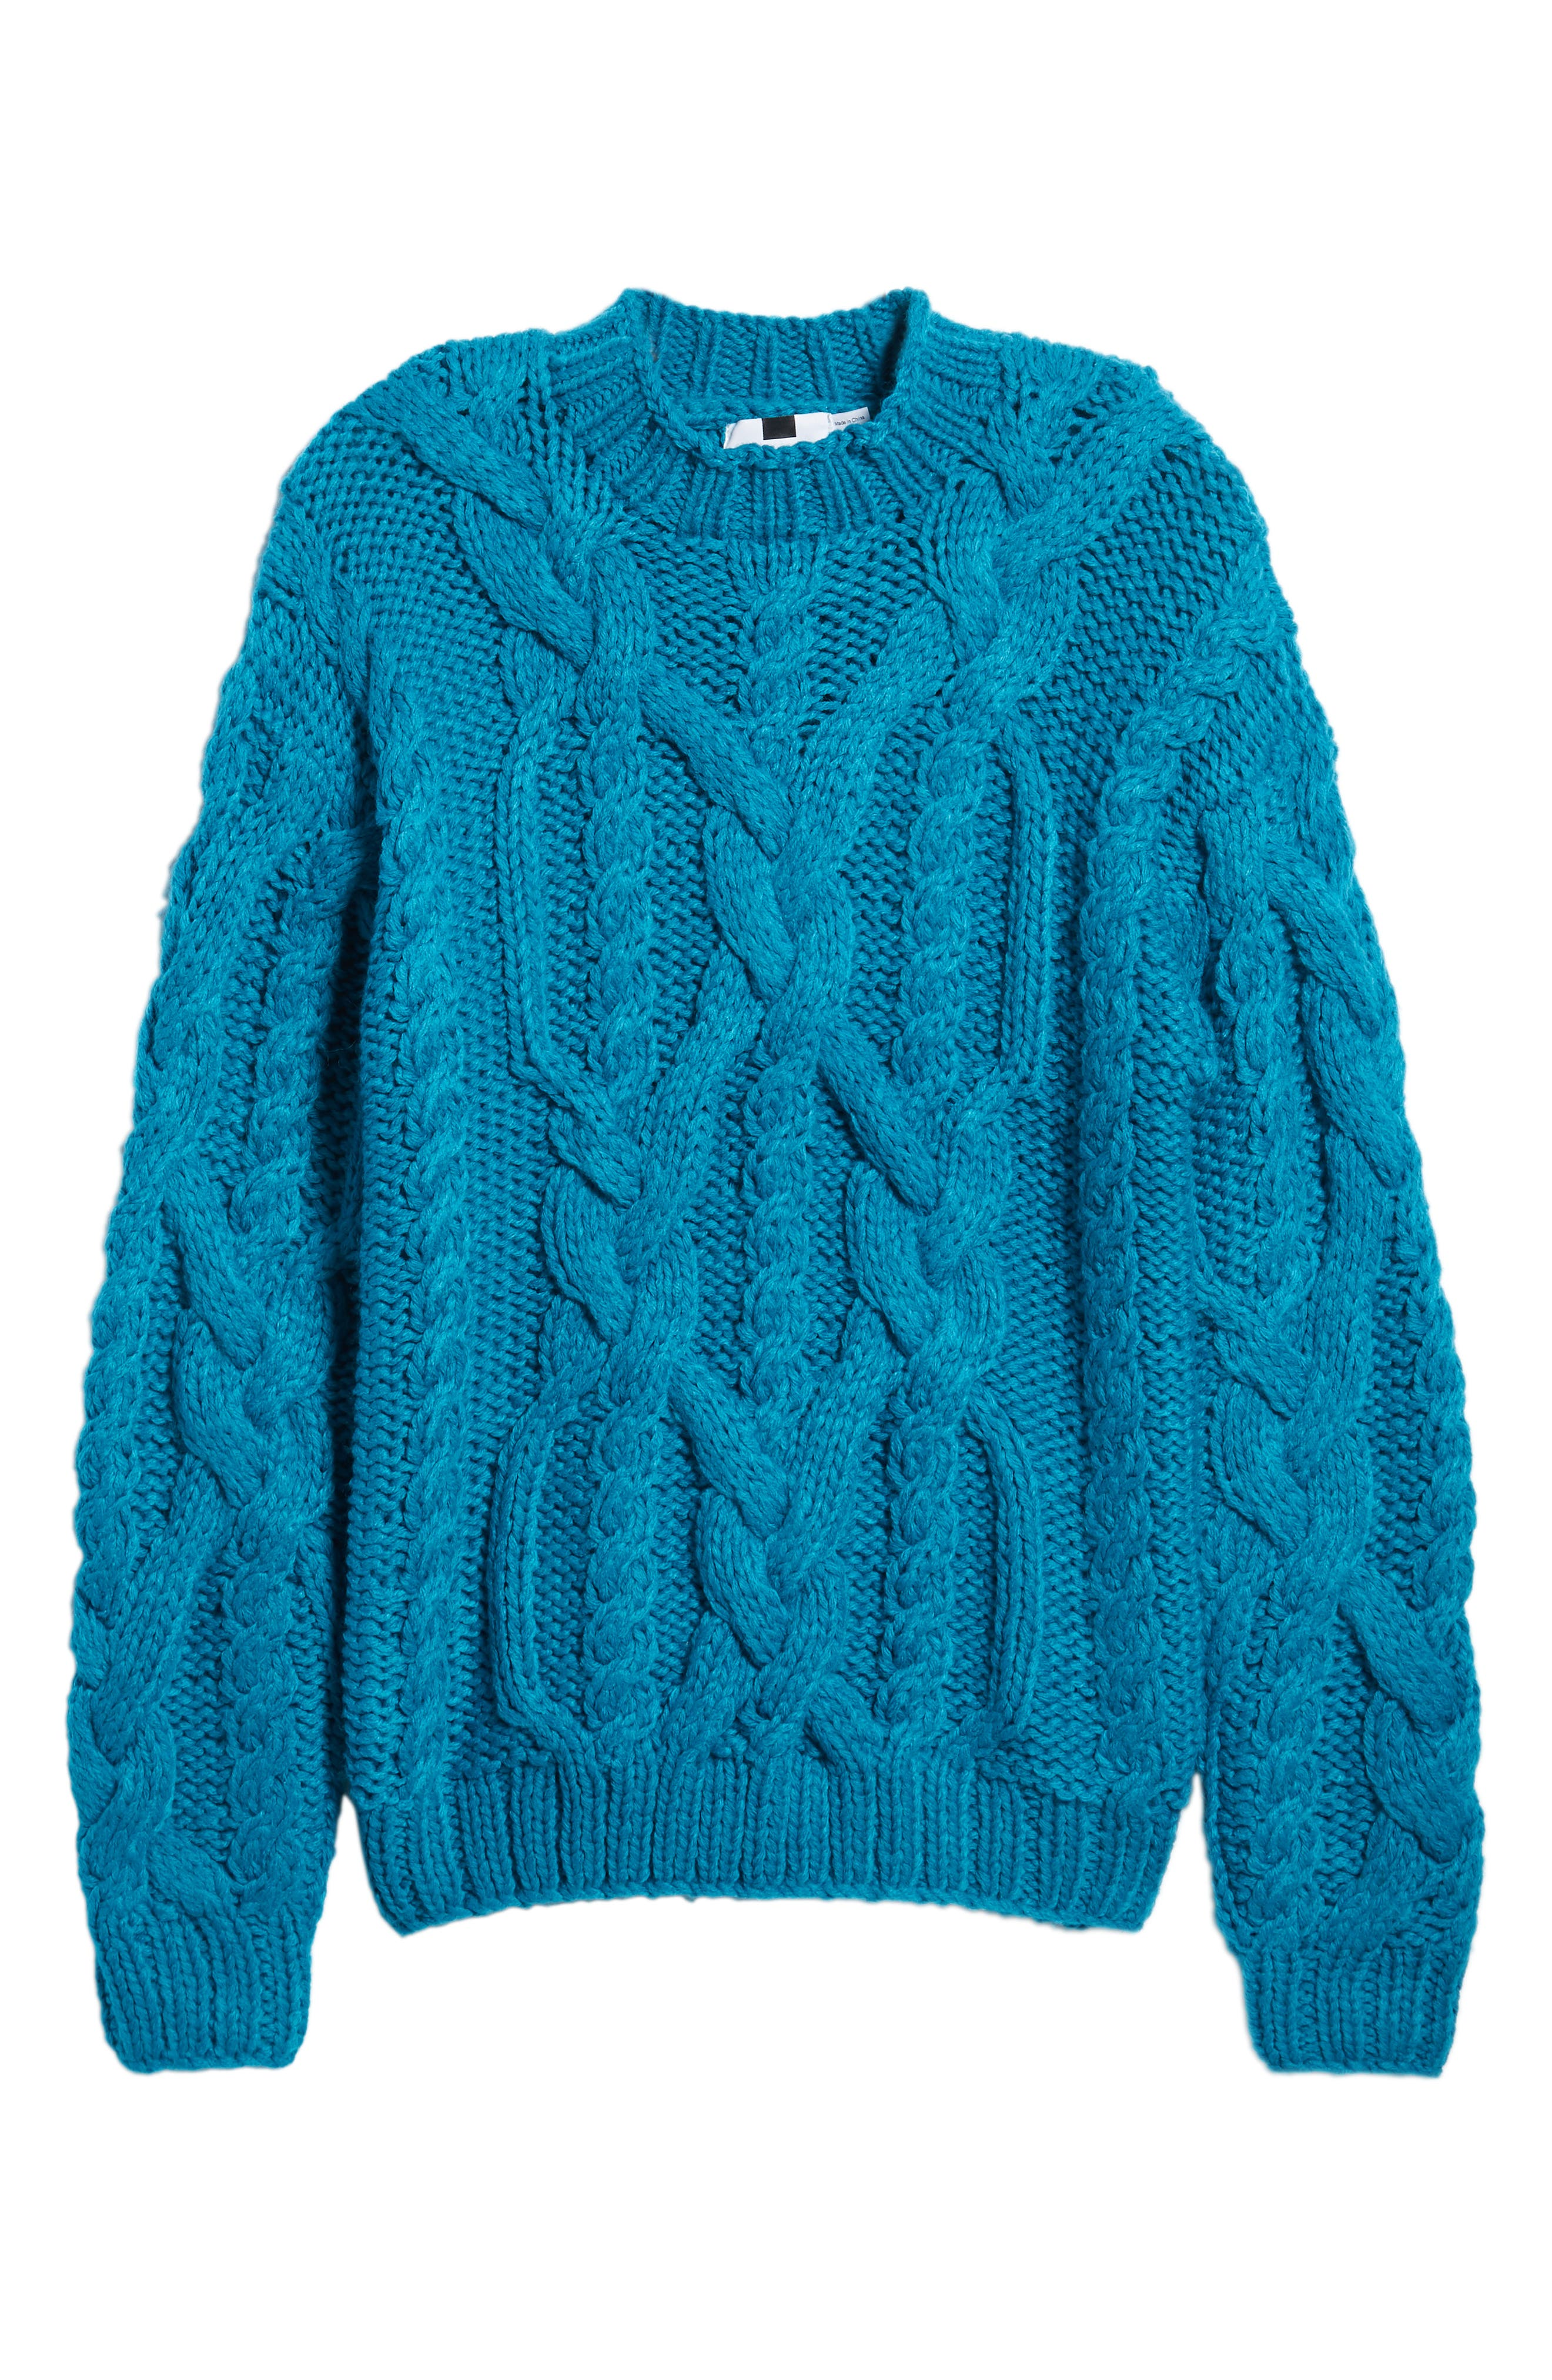 Classic Cable Knit Sweater,                             Alternate thumbnail 6, color,                             BLUE